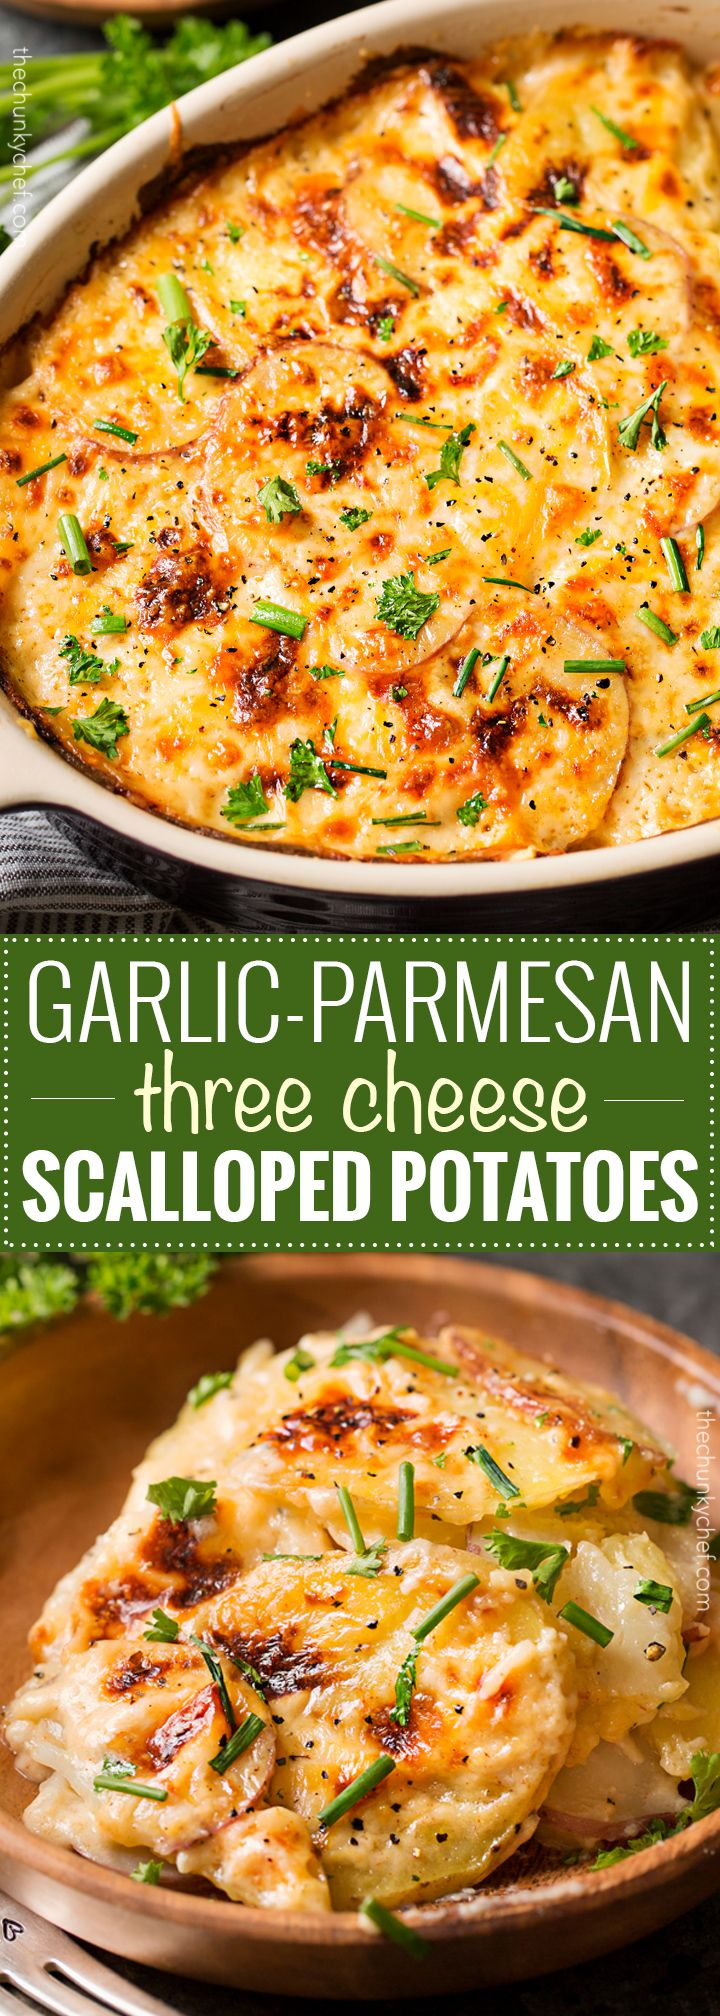 Garlic Parmesan Cheesy Scalloped Potatoes | Velvety soft and tender layers of two kinds of potatoes, smothered in a rich 3 cheese garlic sauce, then topped with extra cheese for a perfectly crispy top! It's the scalloped potato dish you've been dreaming of your entire life!